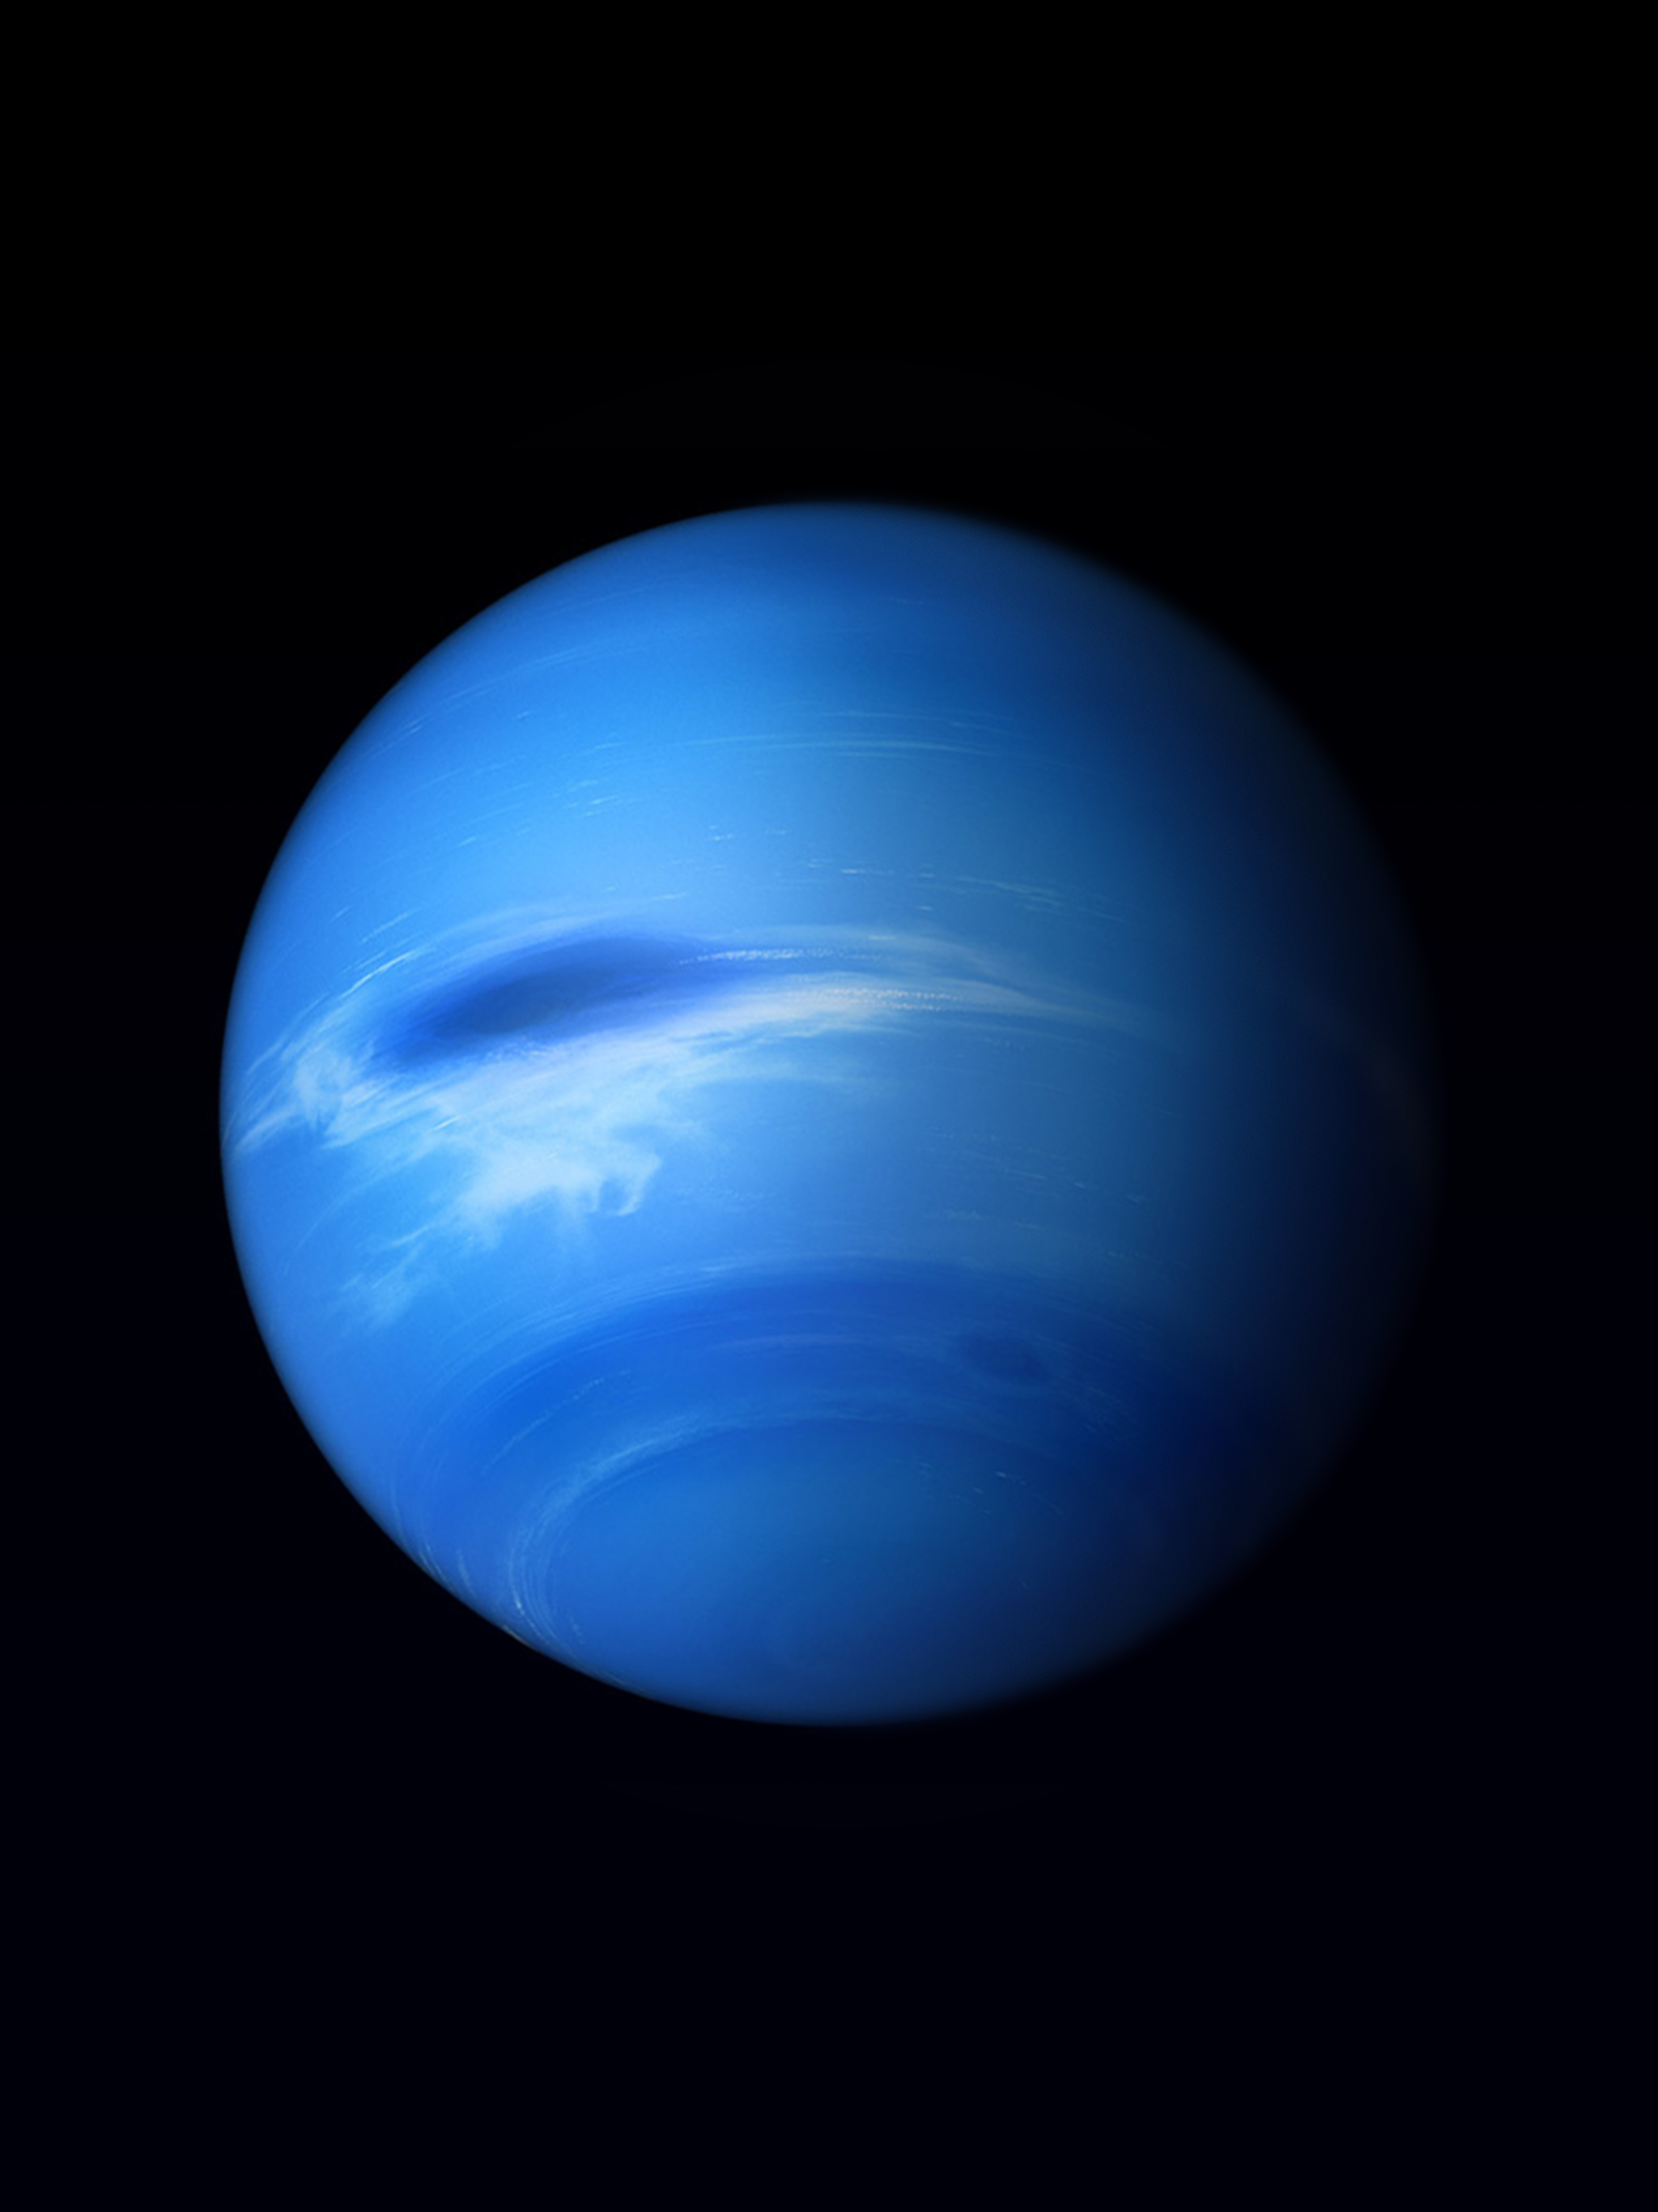 Recommended: Neptune Backgrounds 05.02.15, Tula Mcculley